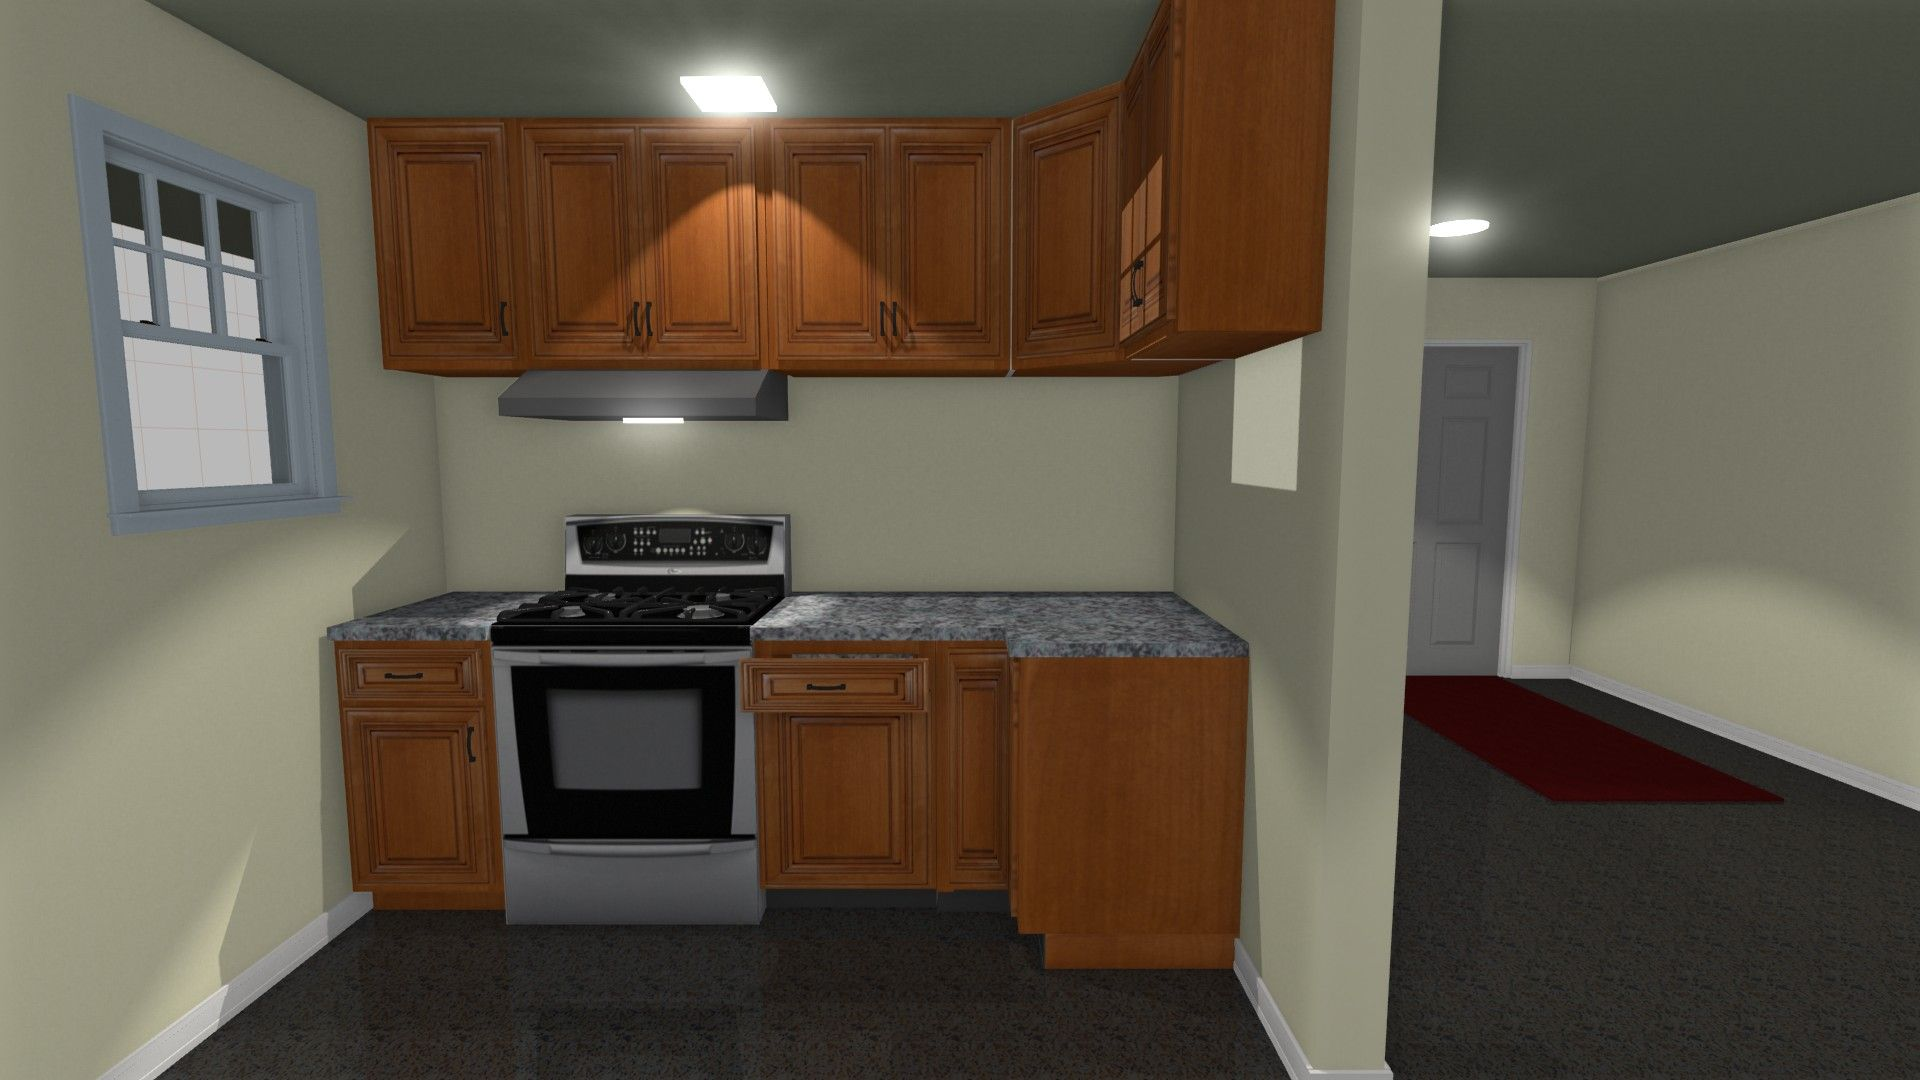 Pin By Pro100usa On Kitchen Design Software Kitchen Design Software Kitchen Design Software Design